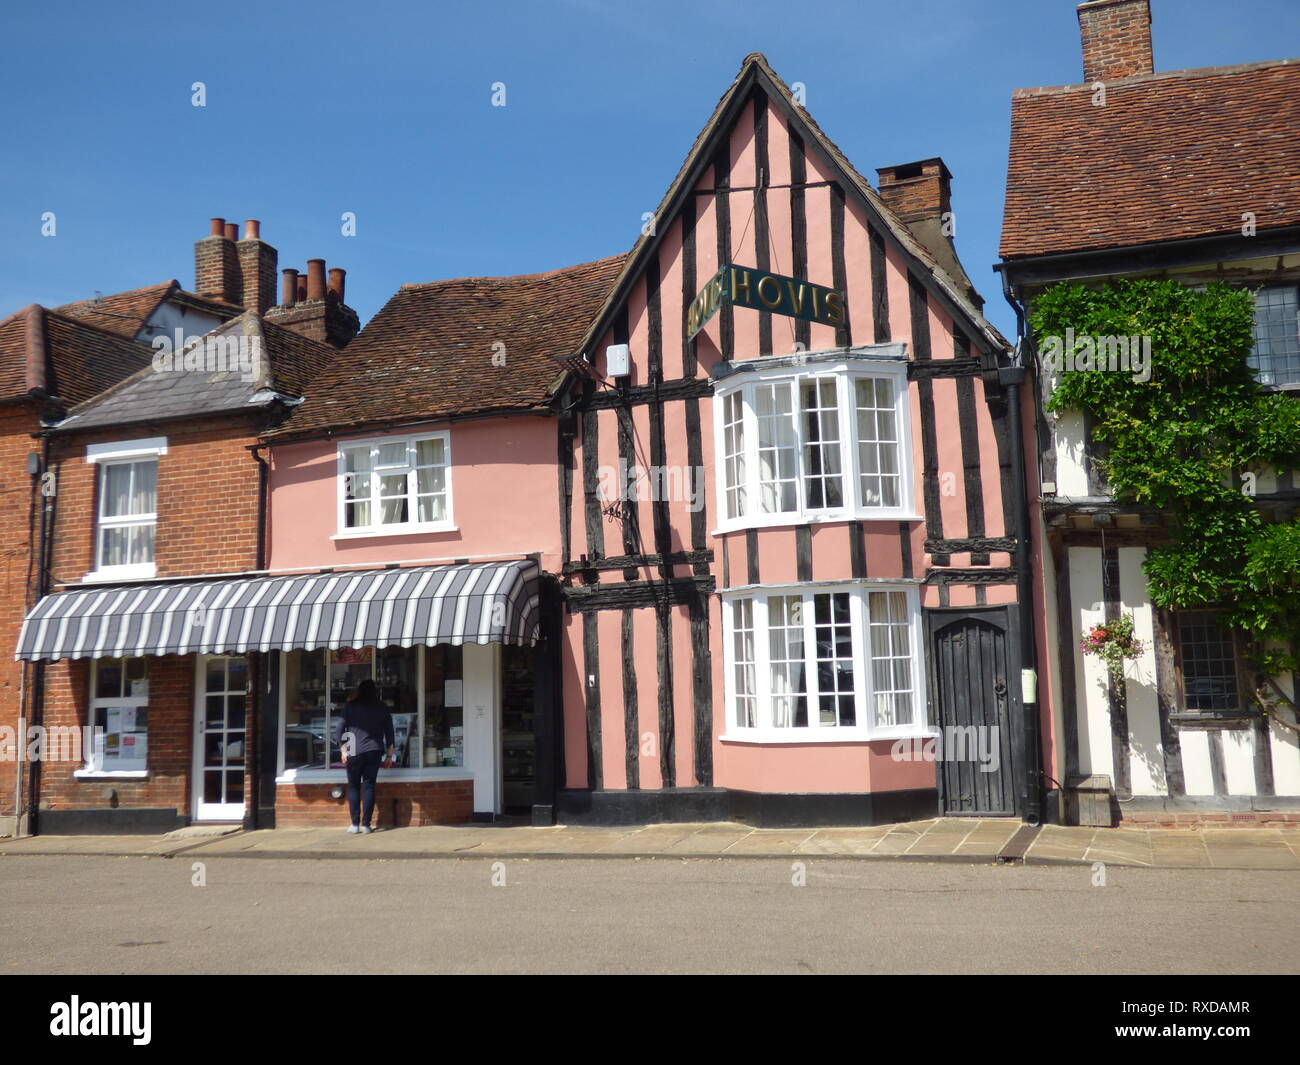 Bakery in the historic Tudor half-timbered buildings in Lavenham, Suffolk, UK. Sunny day. - Stock Image